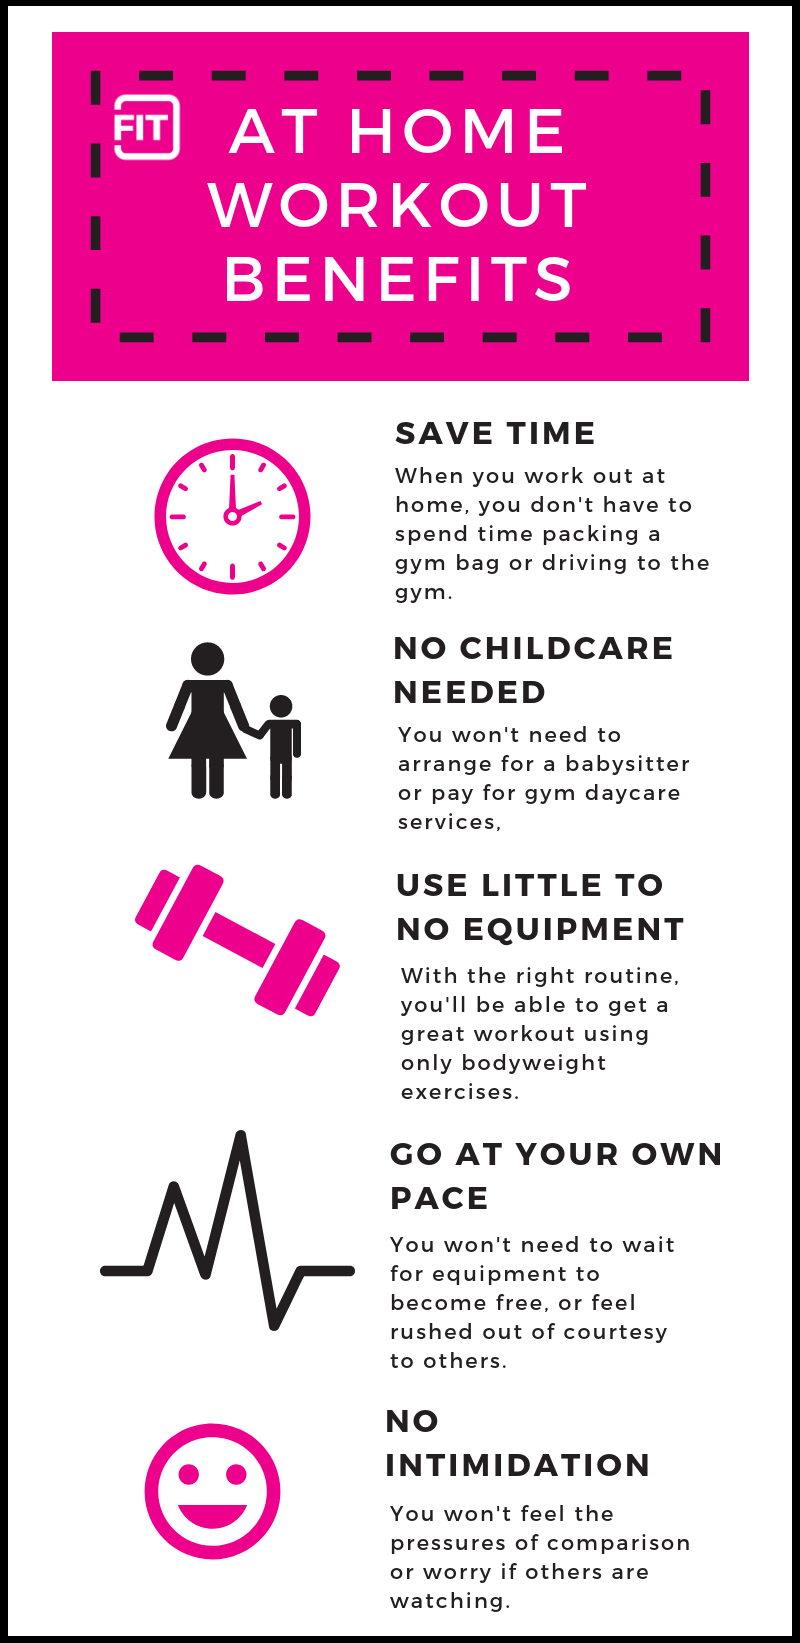 An info graphic showing the benefits of an at home workout